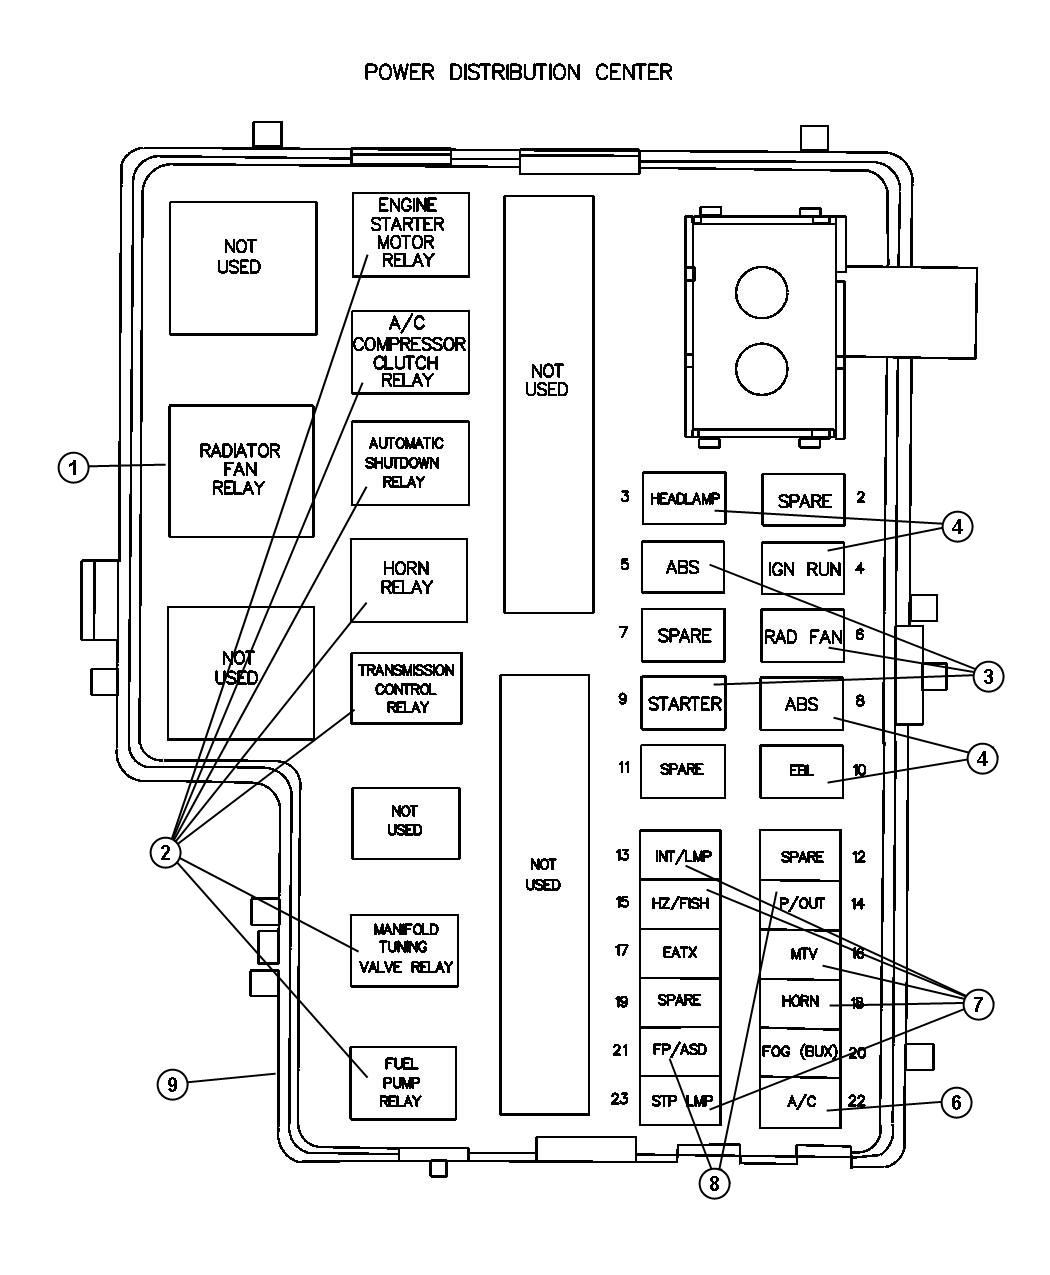 Dodge Neon Fuse Box | Wiring Library - Hss Wiring Diagram